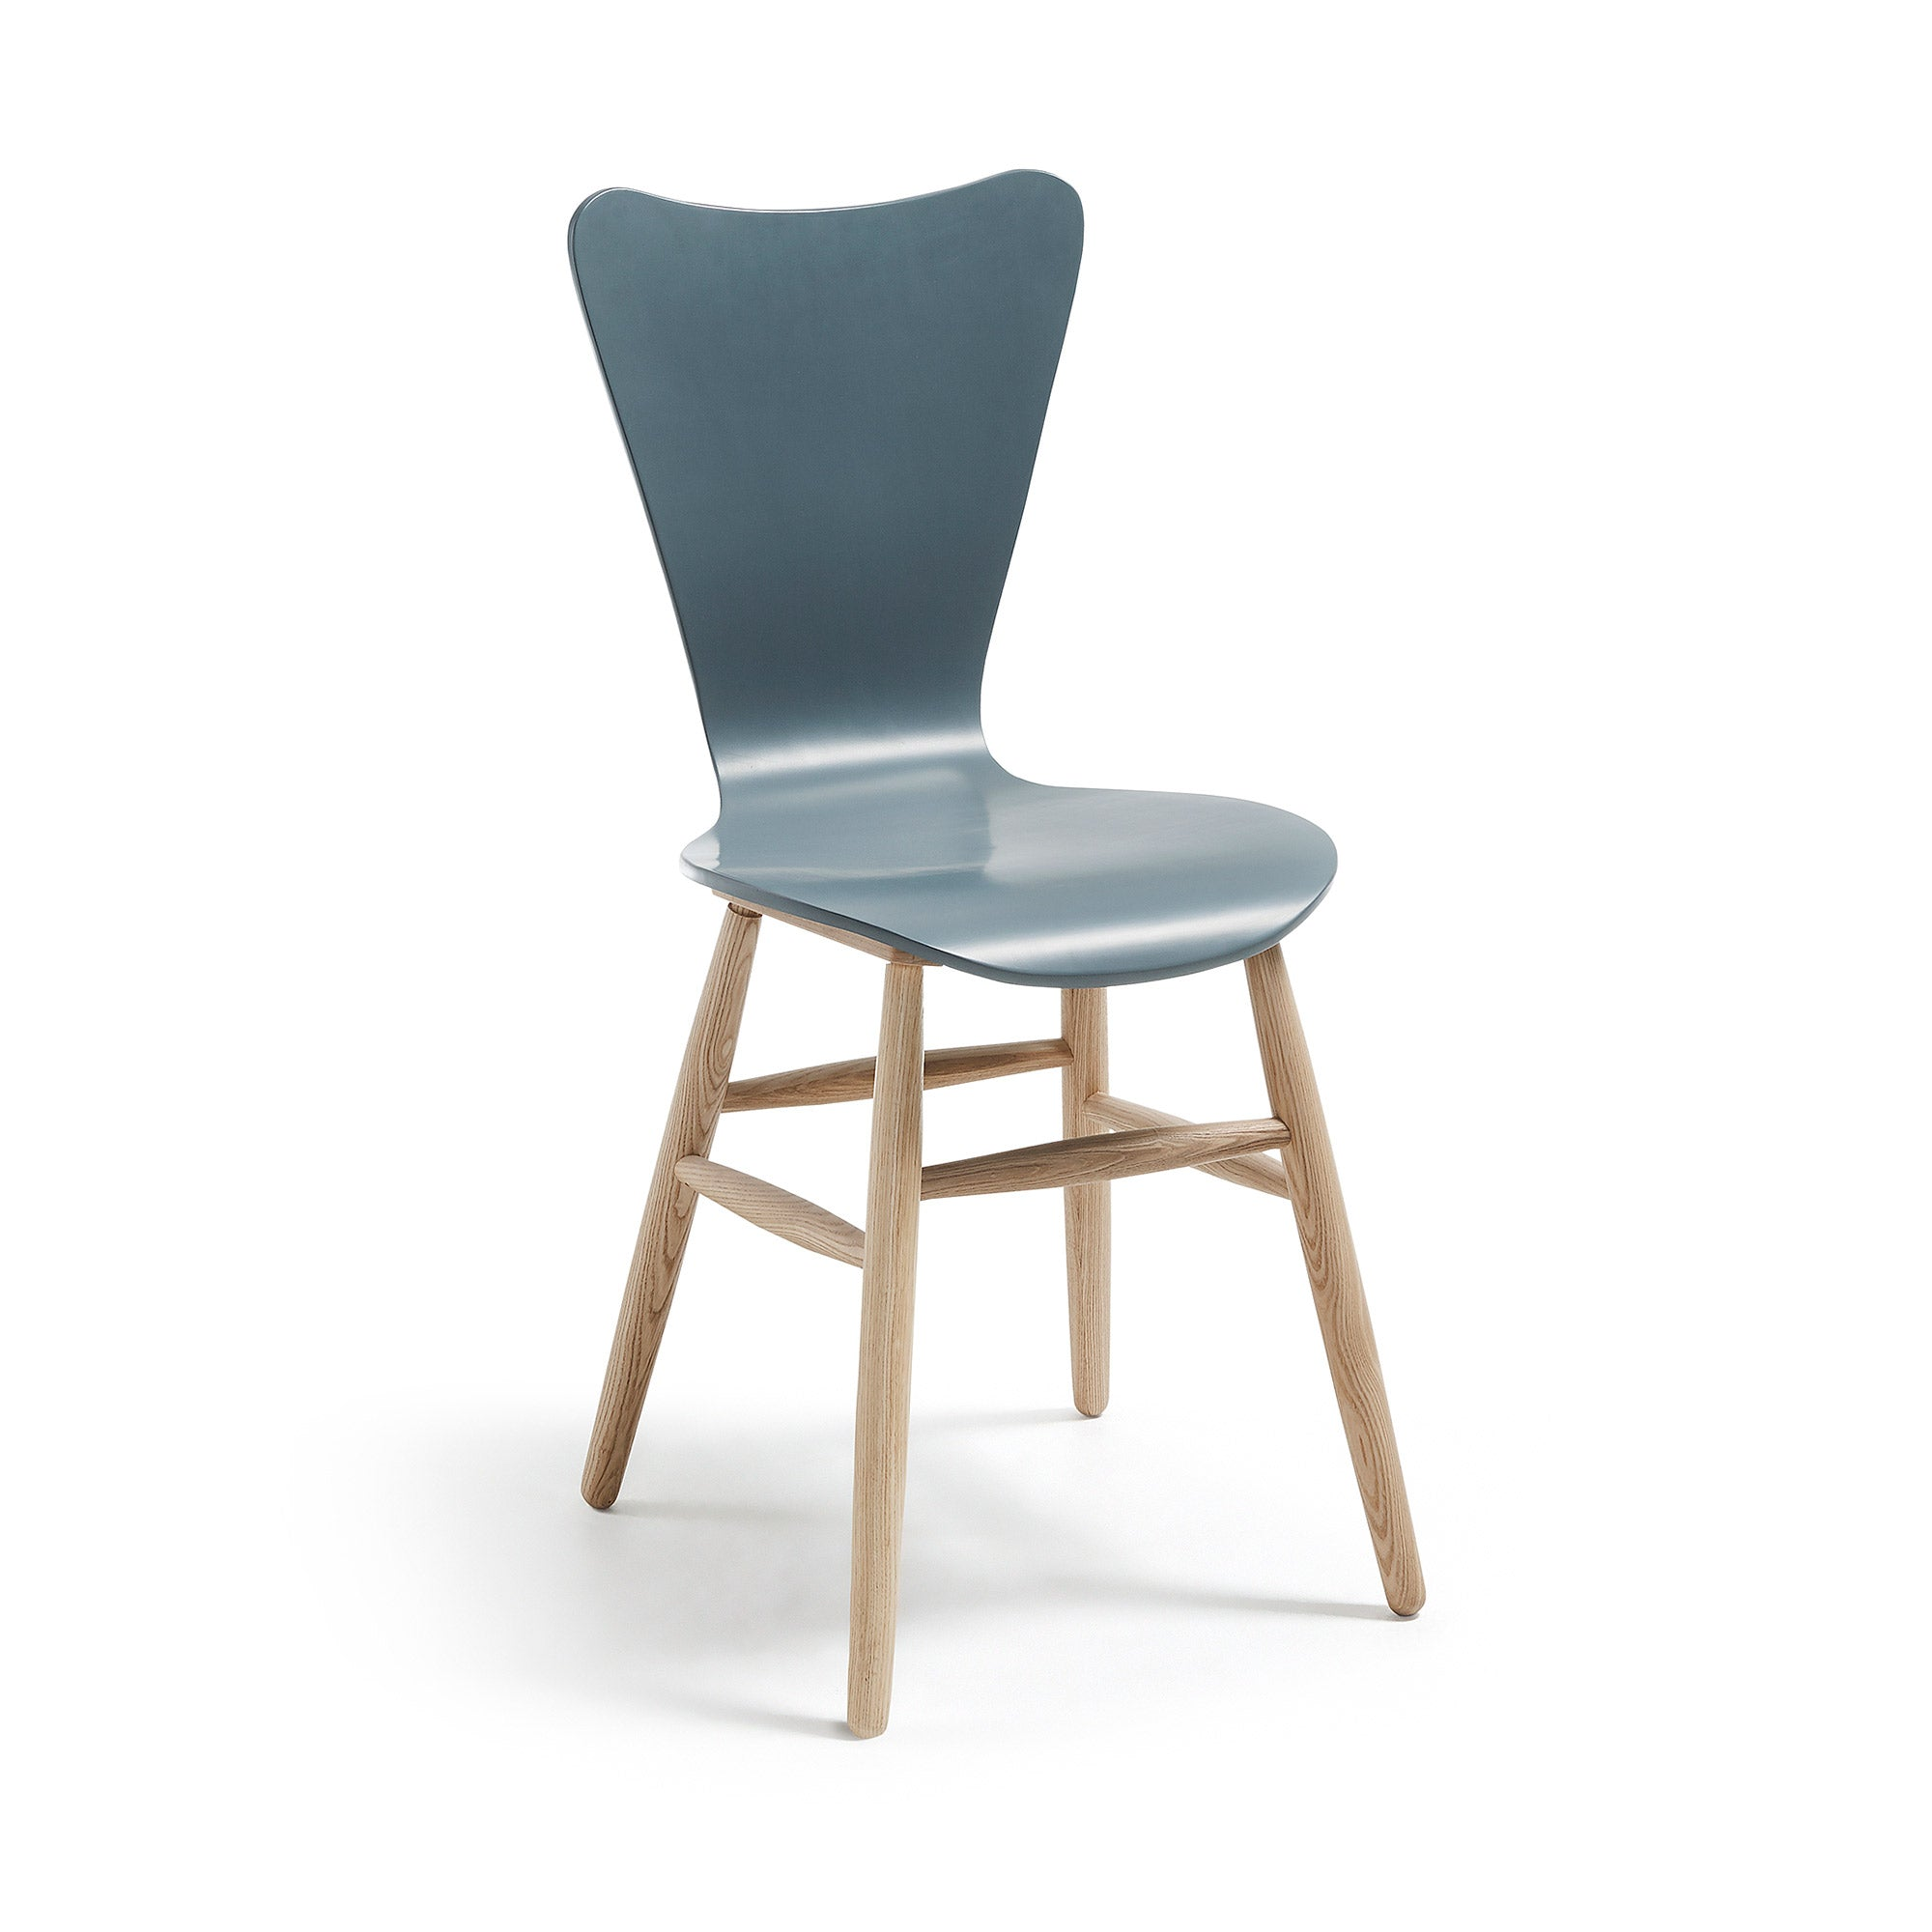 Kolby Chair - Matt Grey, Chair - Home-Buy Interiors